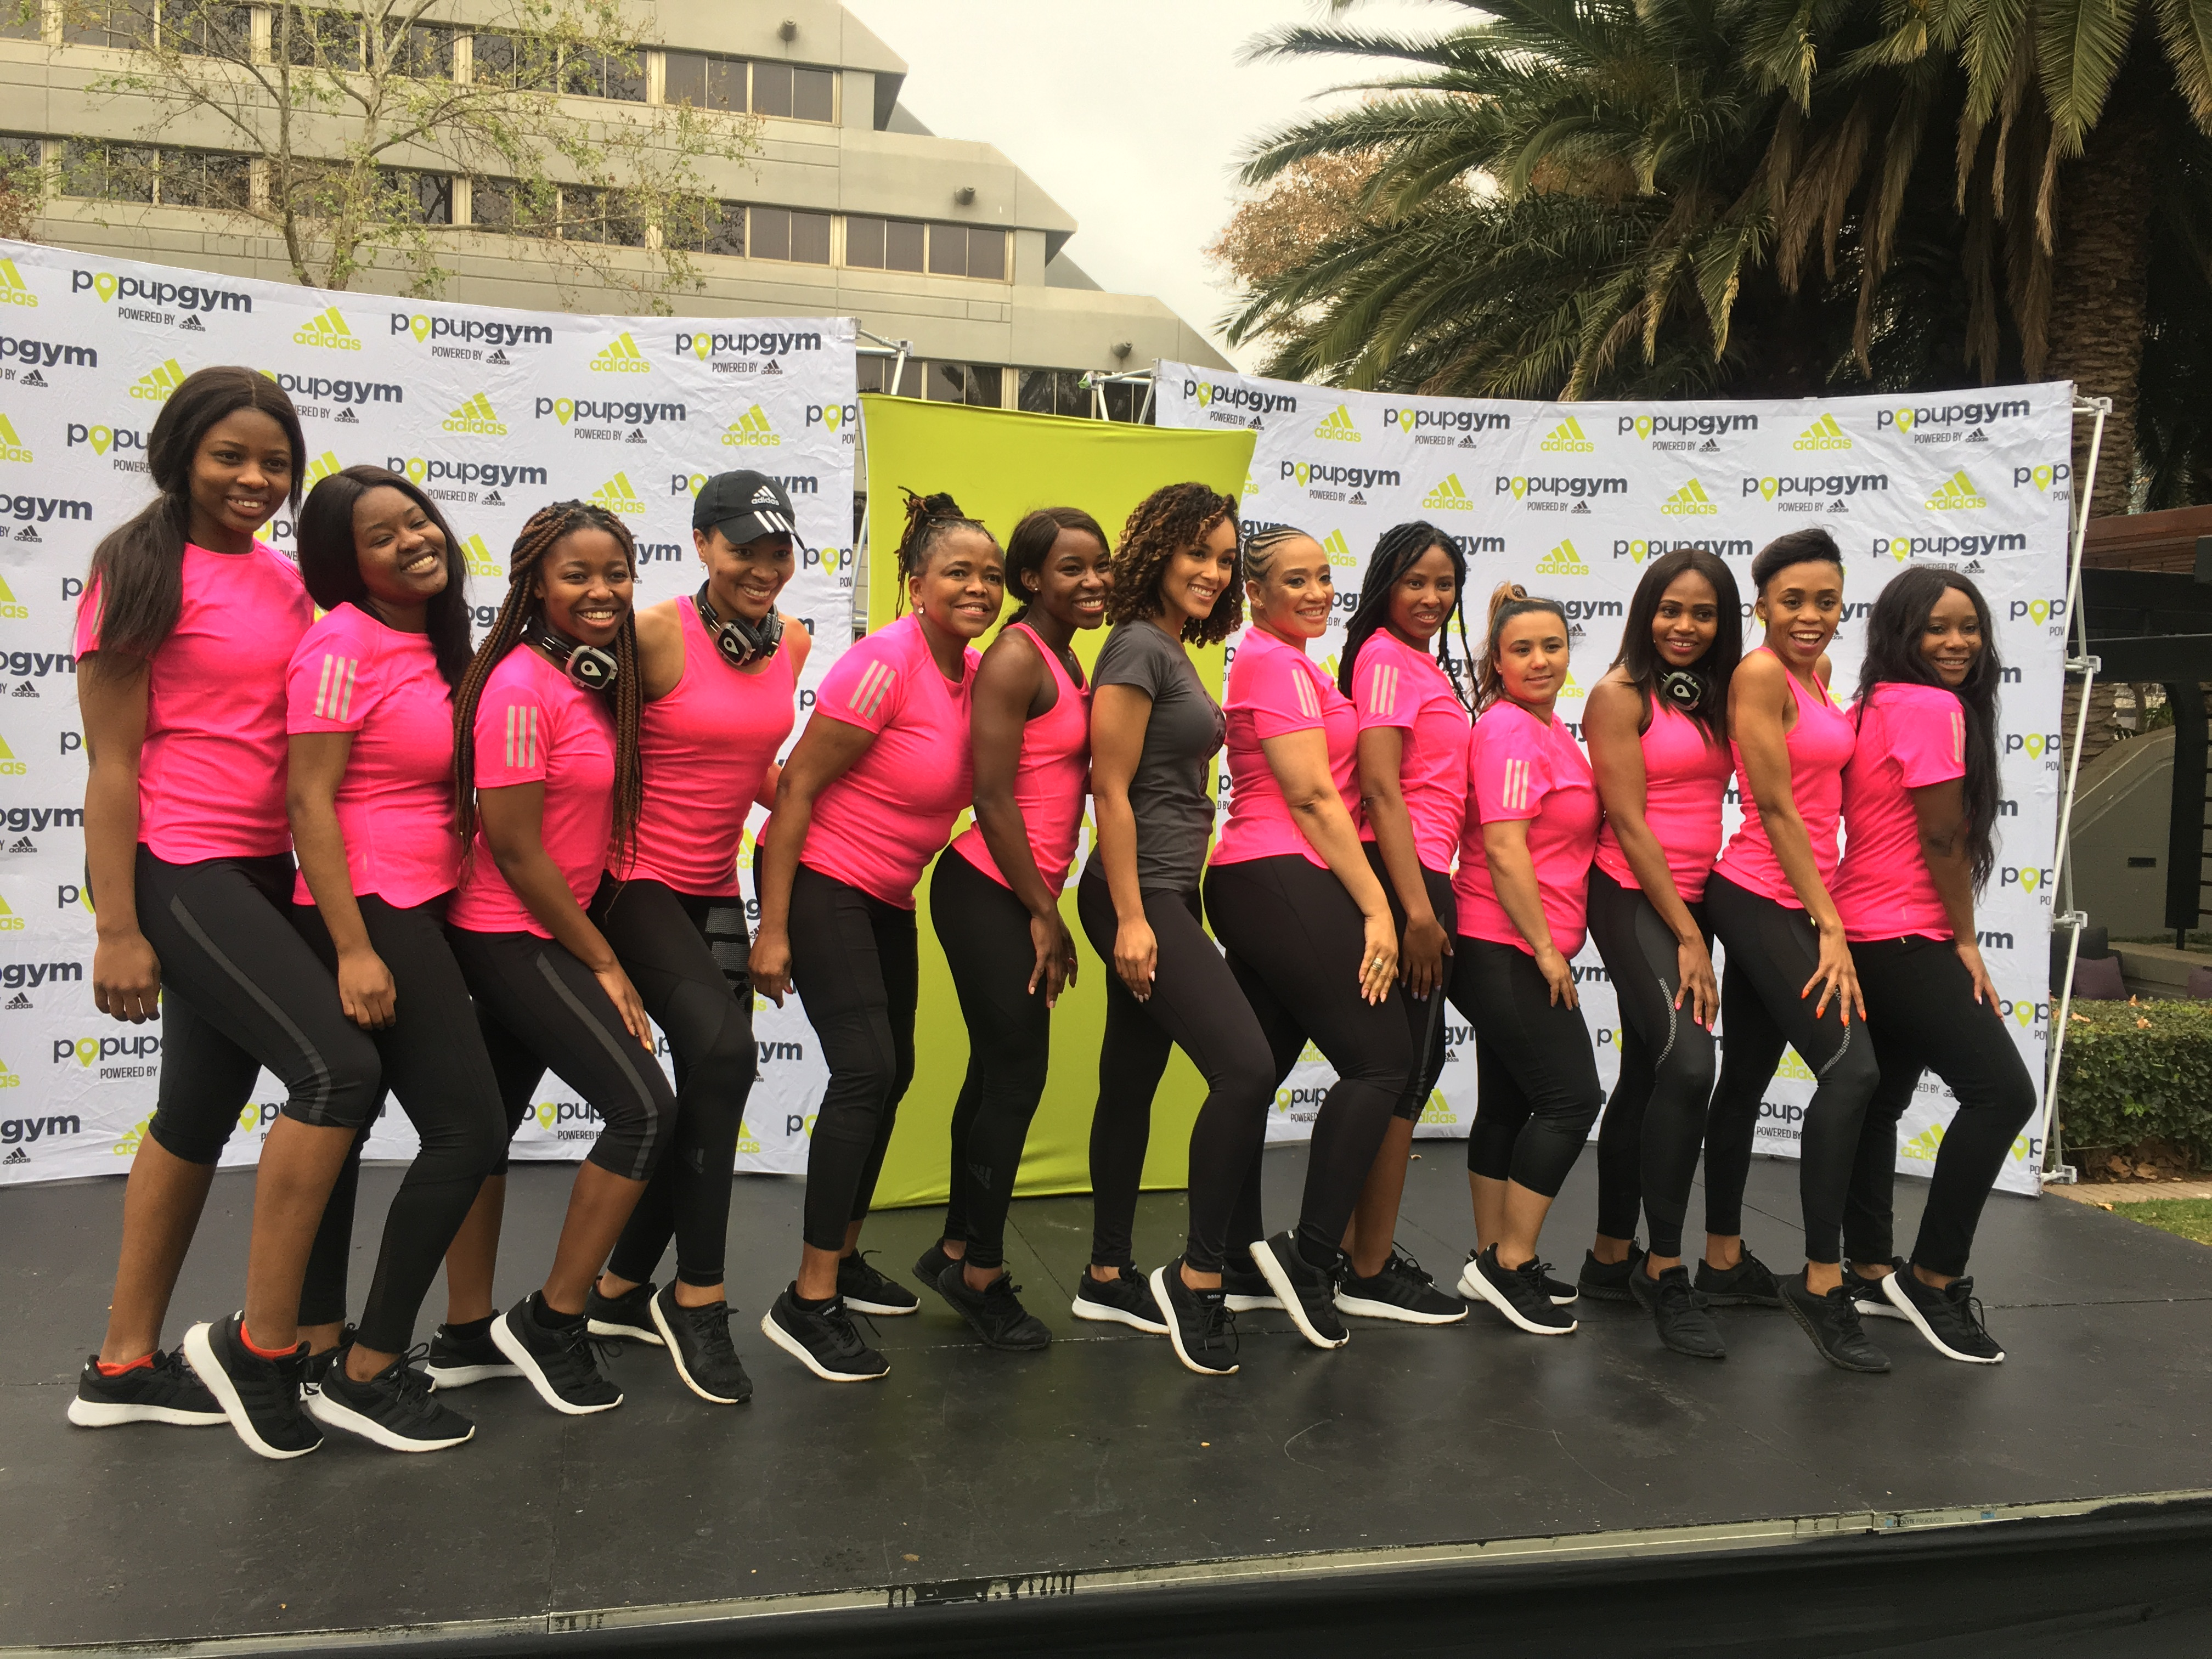 IN PICTURES: Women's Day Pop up gym